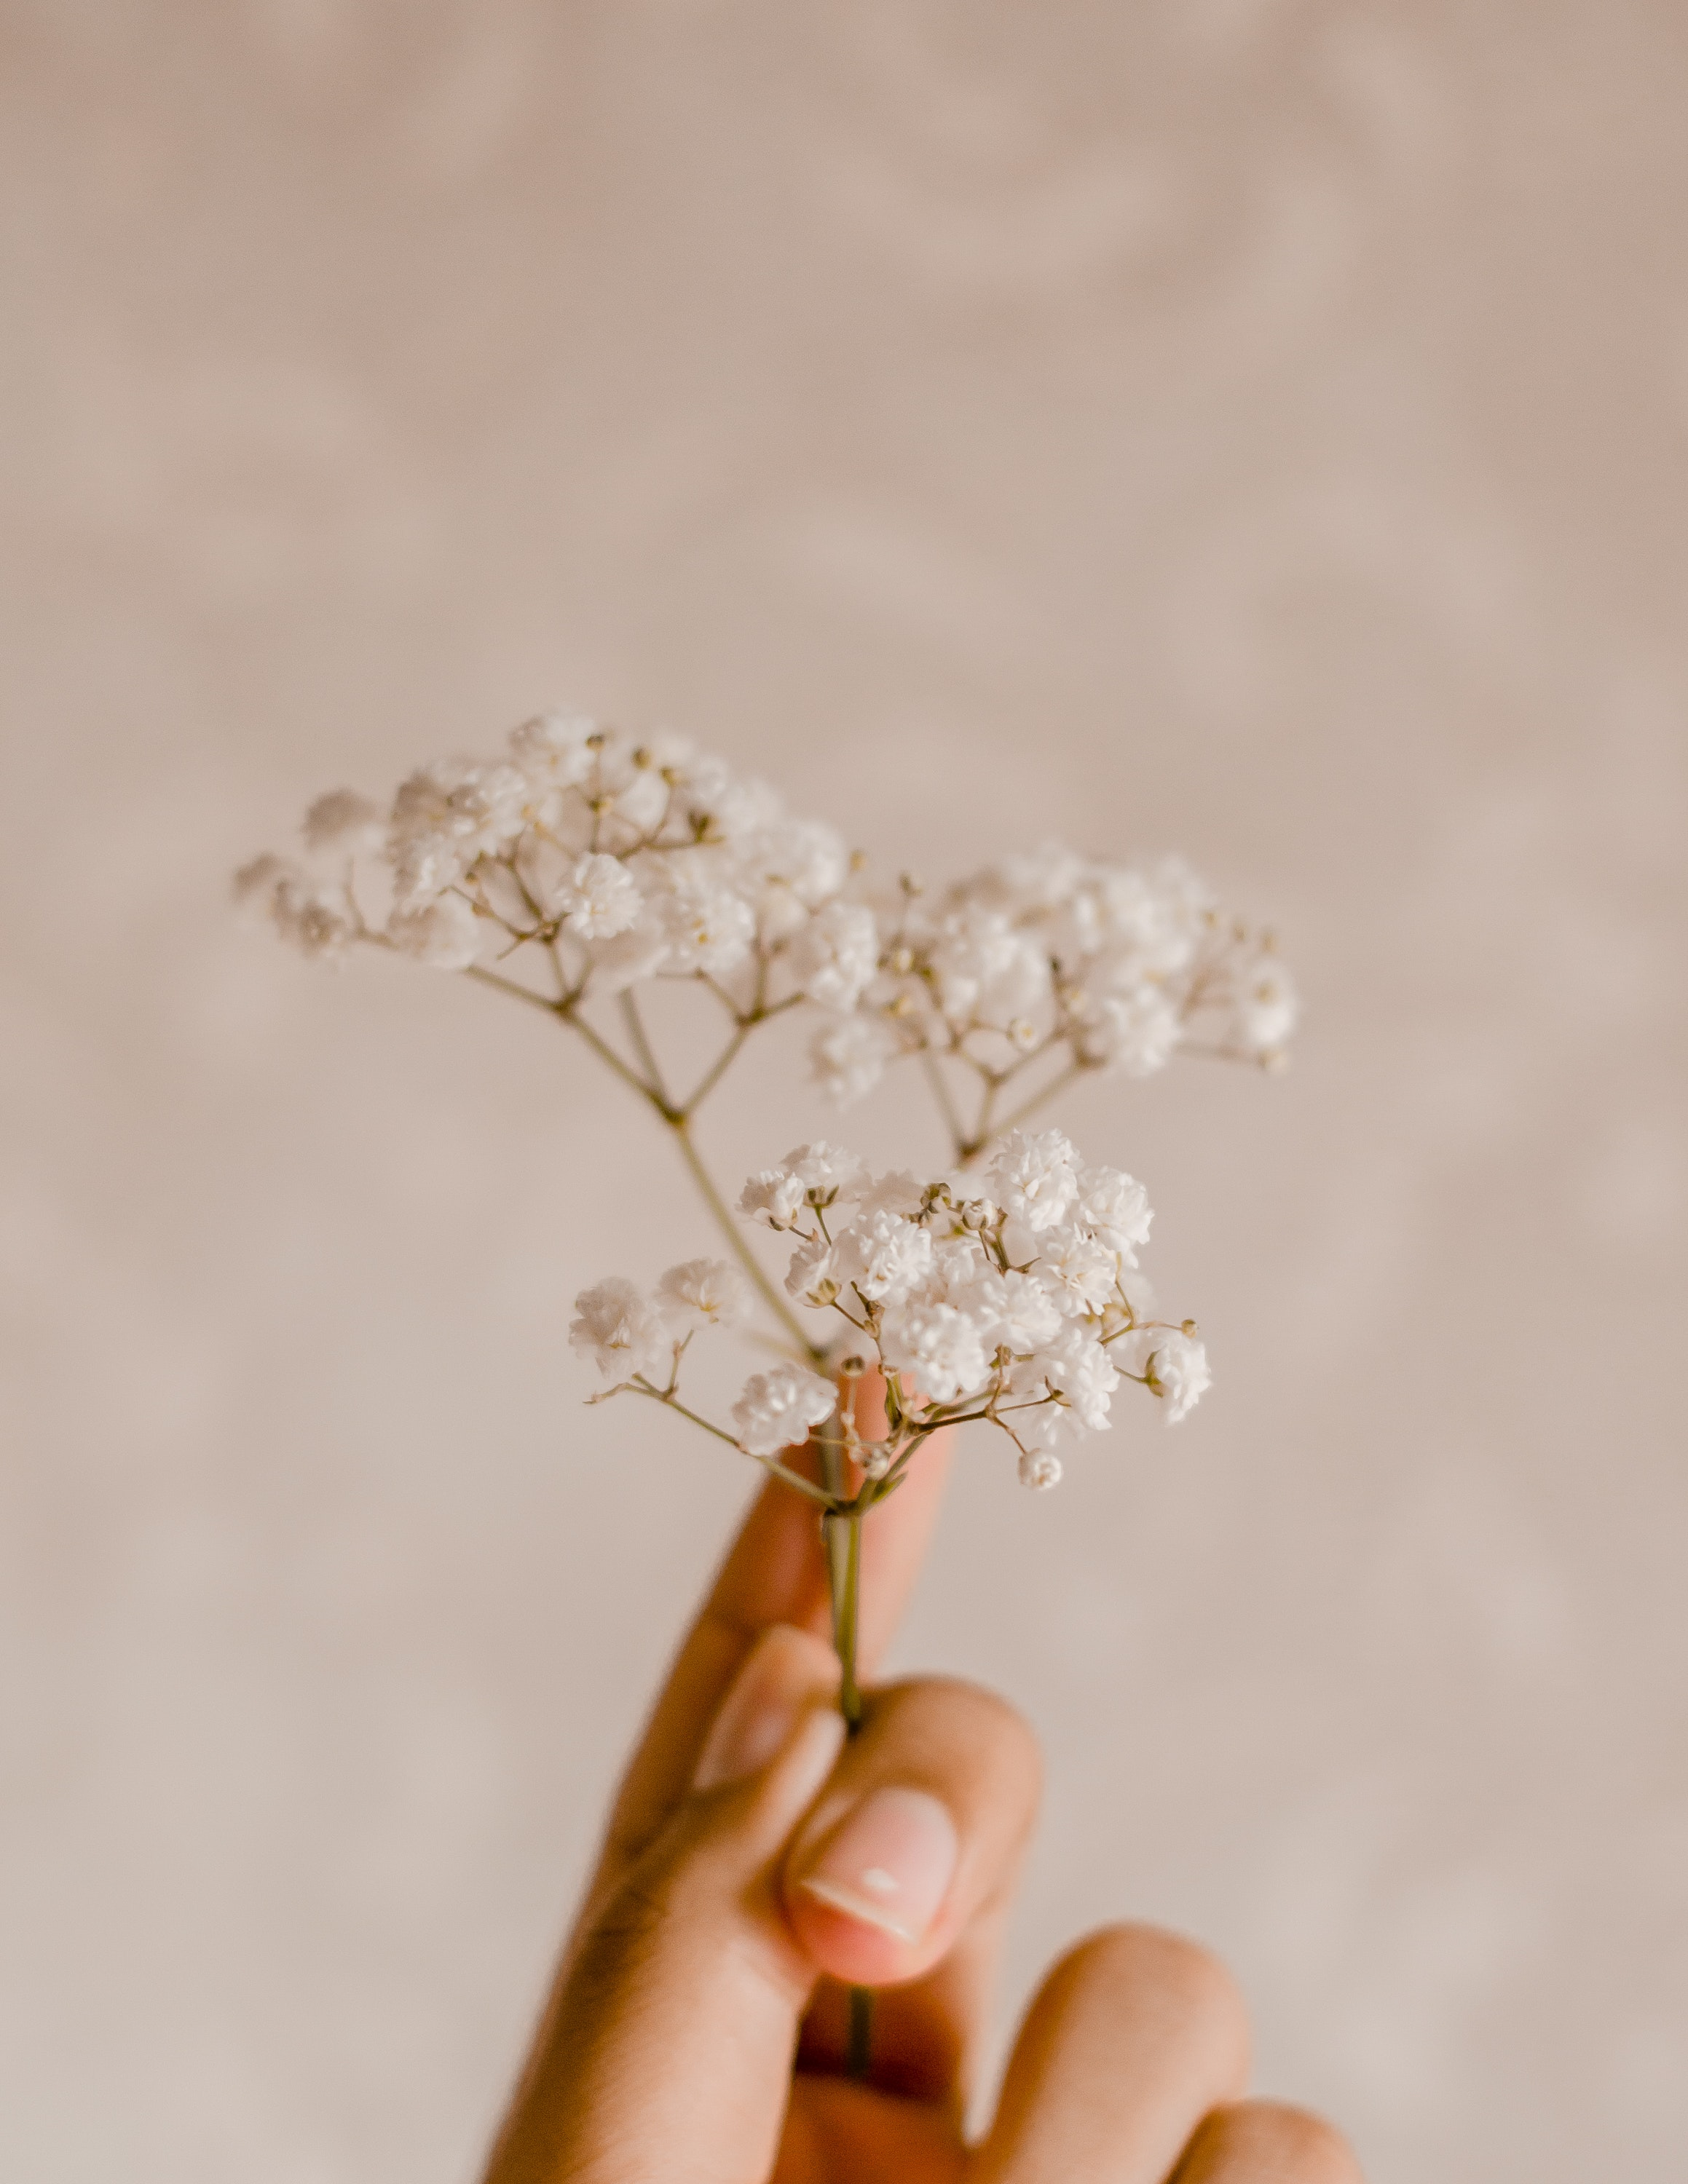 Person's hand holding a white-petaled flower